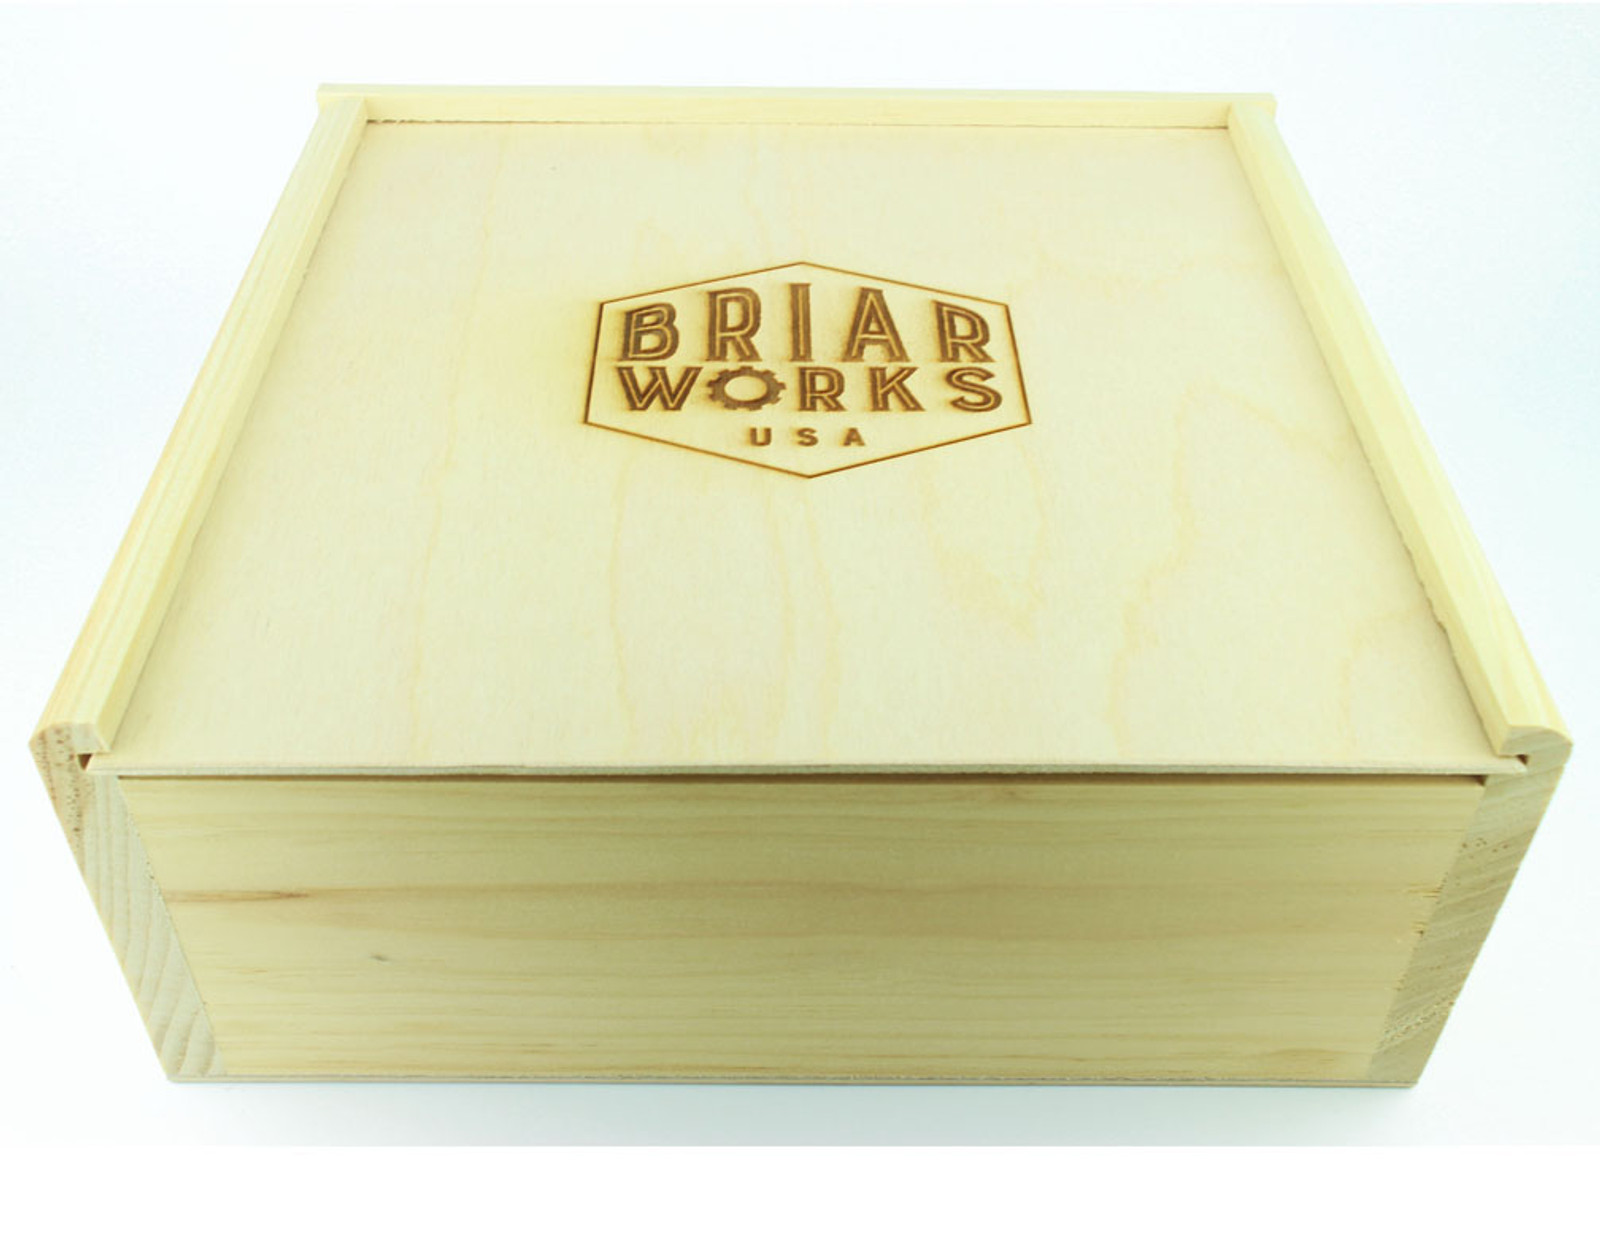 BriarWorks Country Lawyer Gift Box